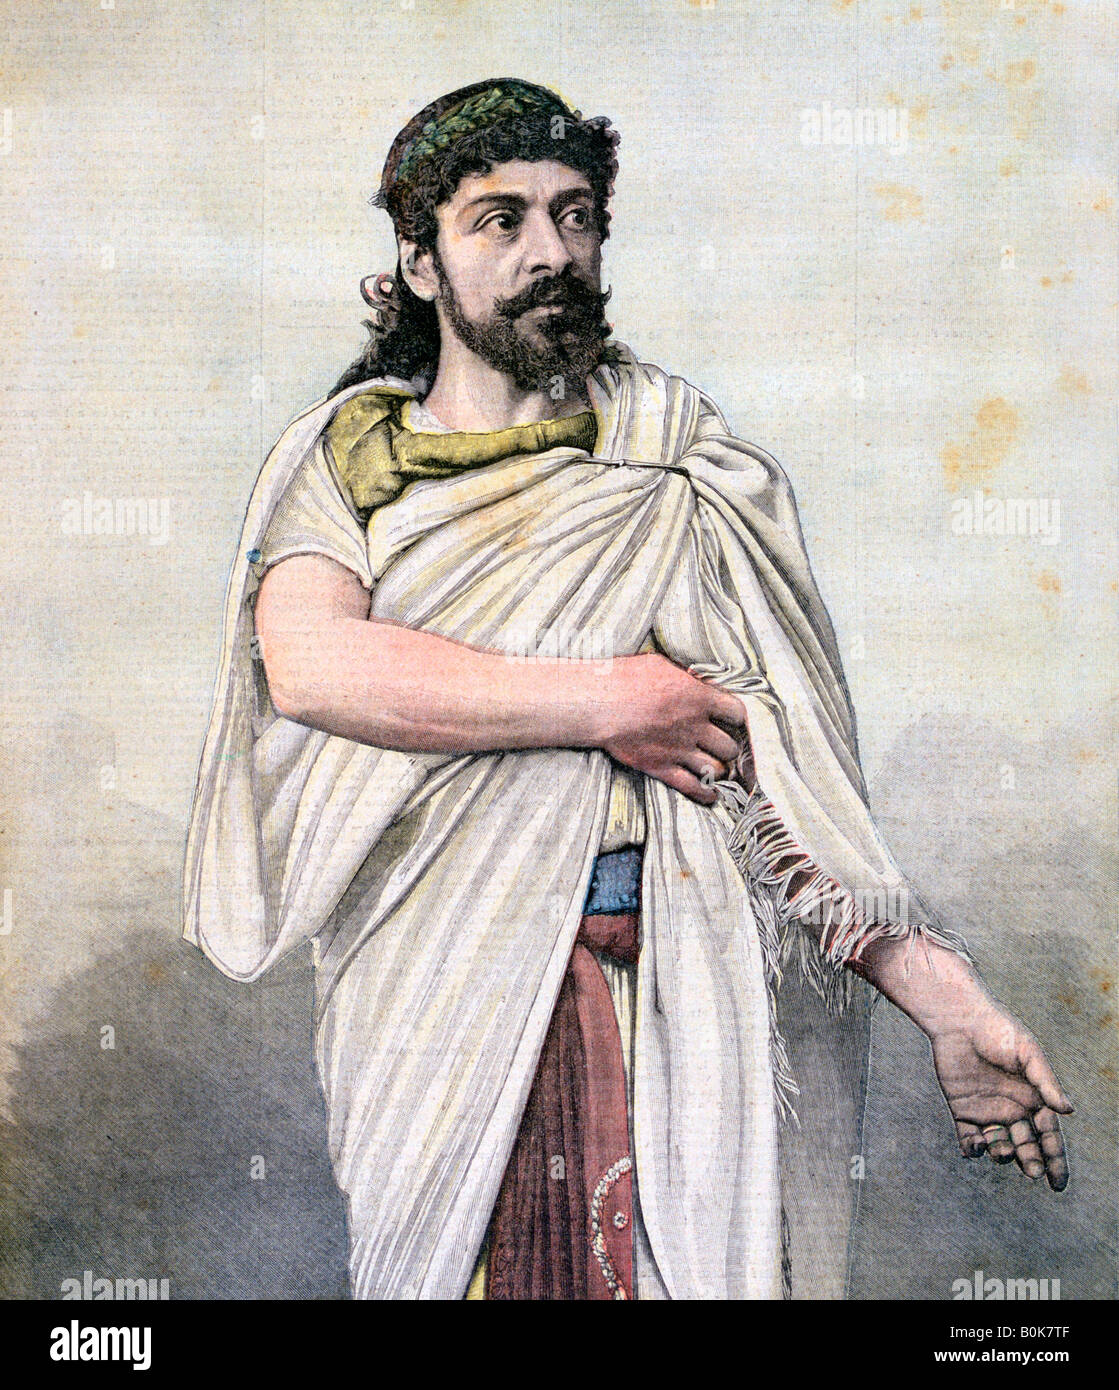 an examination of the role of tiresias in the play oedipus rex by sophocles Chorus with reference to oedipus rex: sophocles also uses the chorus at the beginning of the play to help tell the audience the given circumstances of the play we hear all about the terrible havoc that the plague is wreaking on thebes.